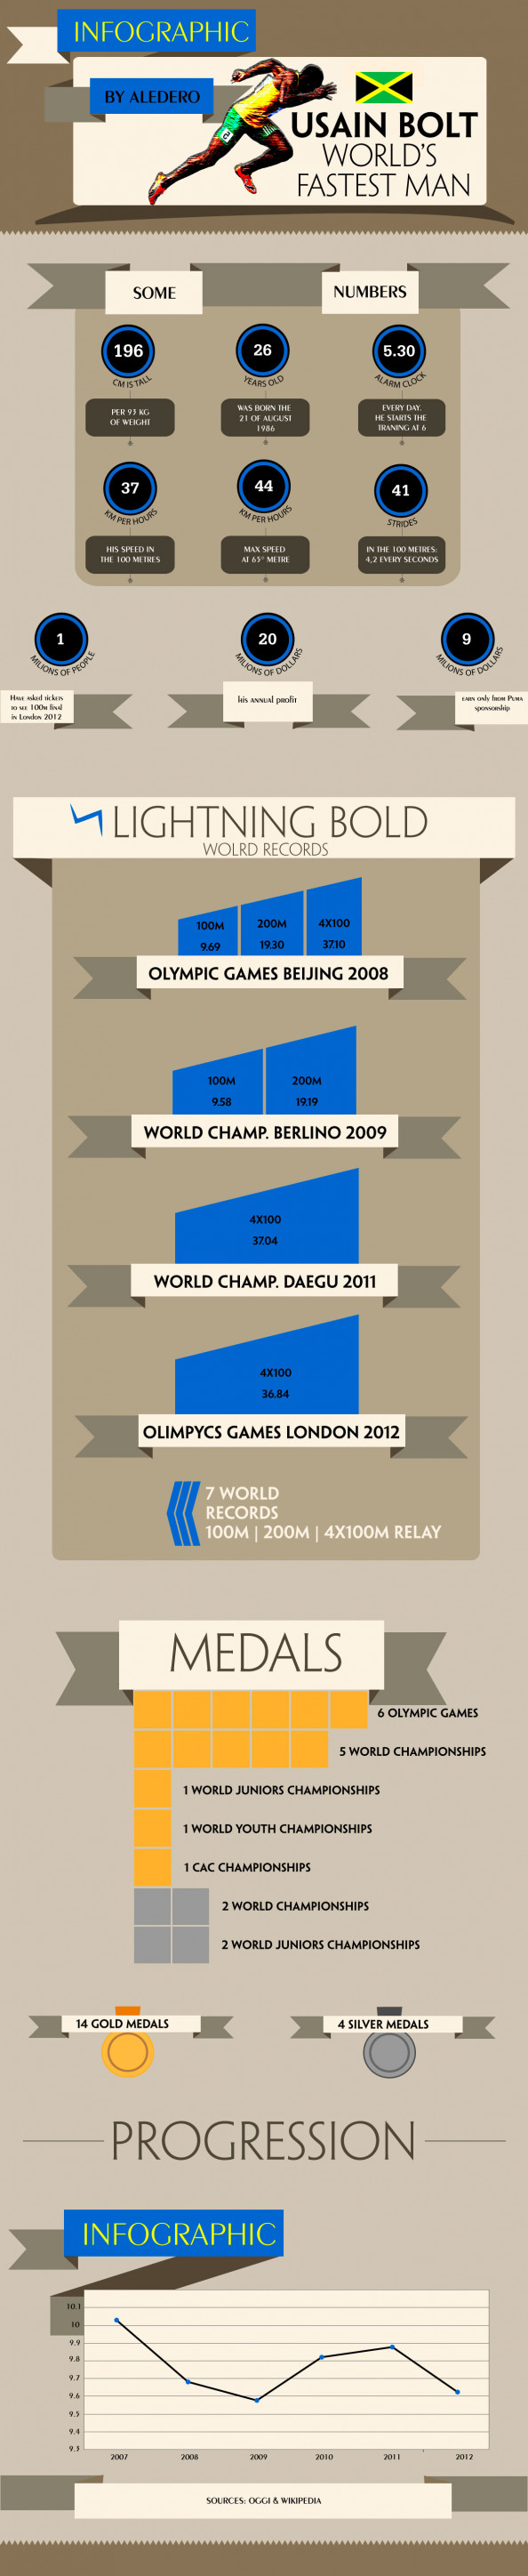 Usain bolt world's fastest man Infographic